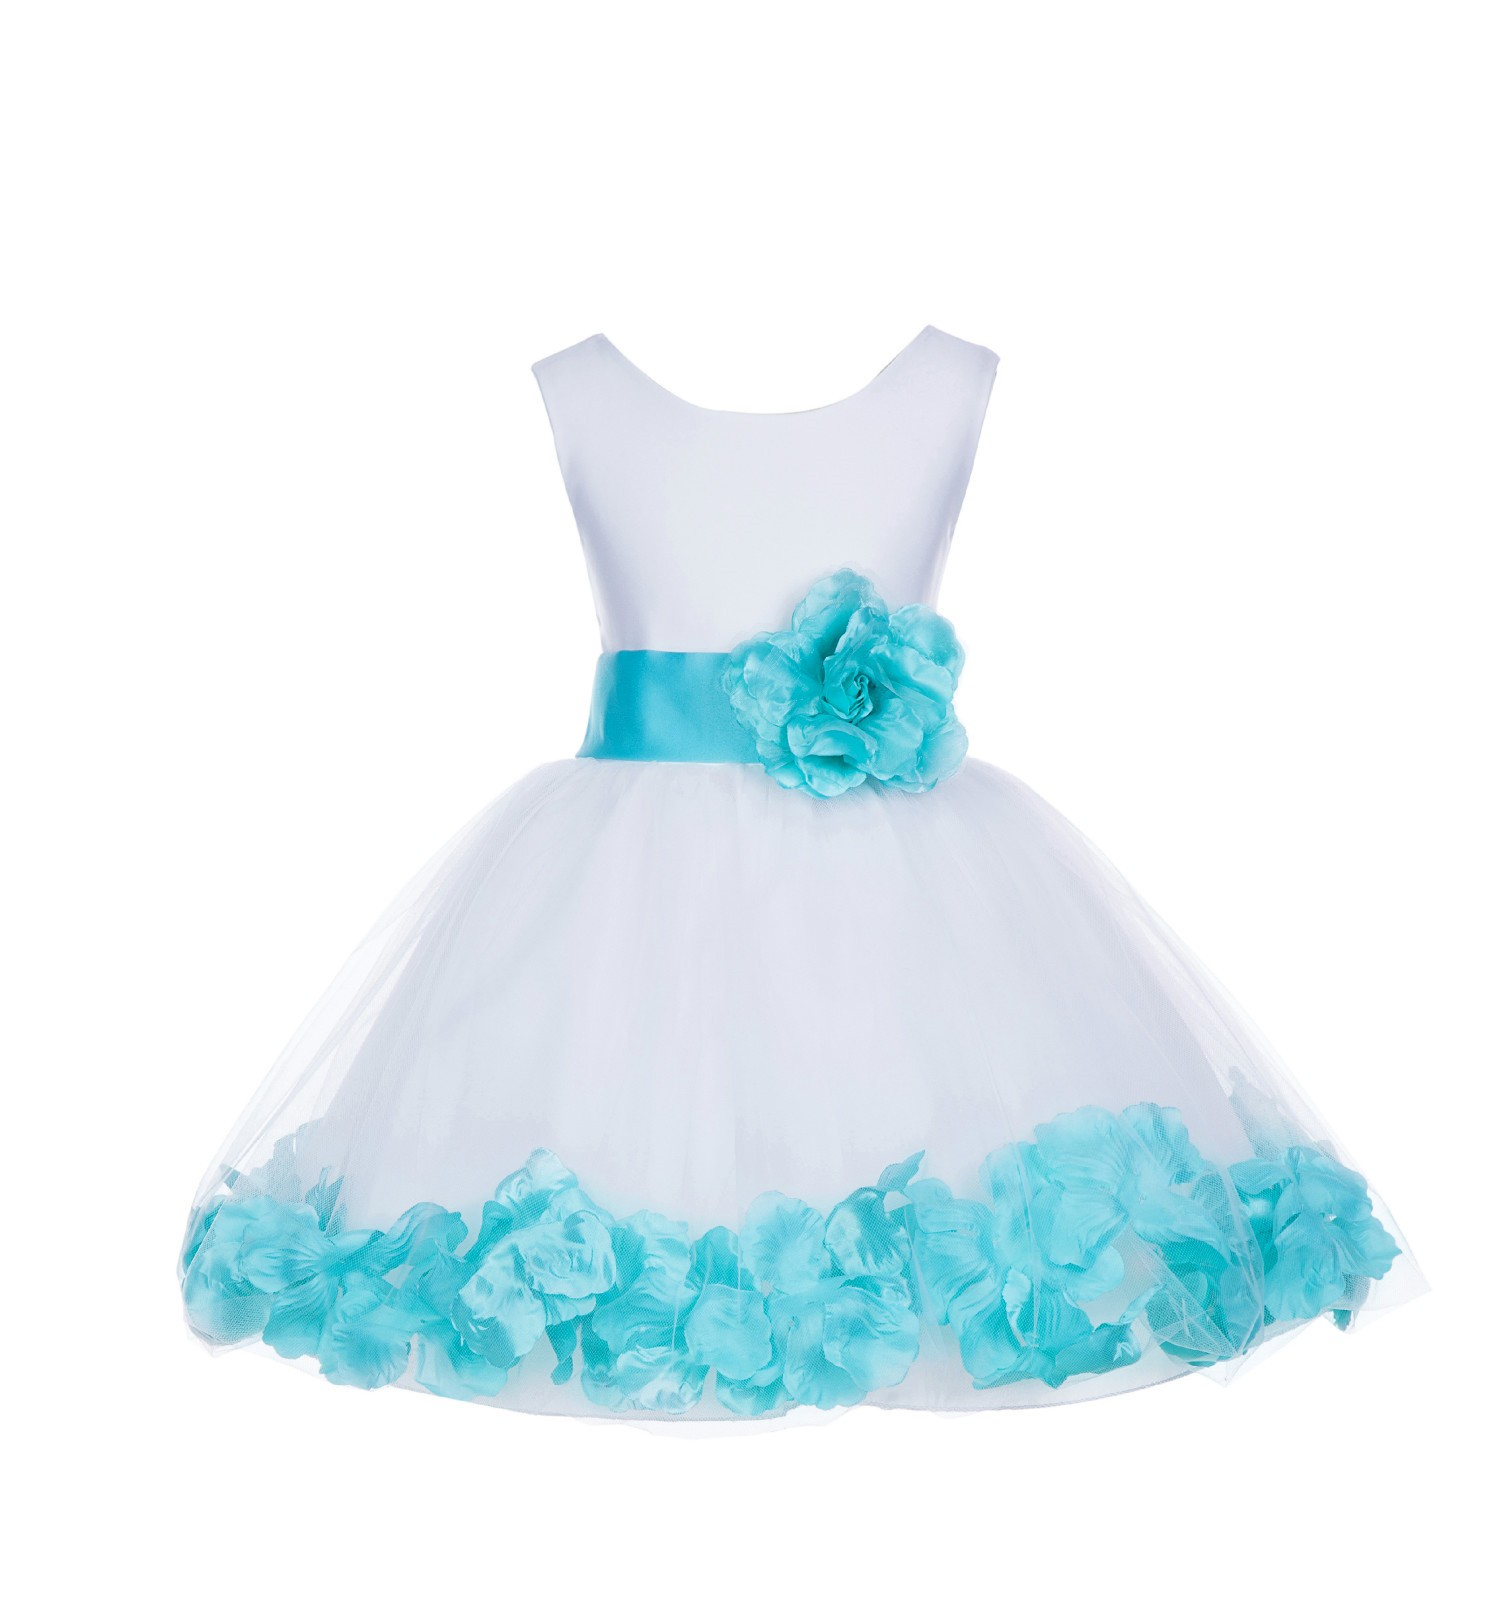 White/ Tiffany Blue Rose Petals Tulle Flower Girl Dress Wedding 305T